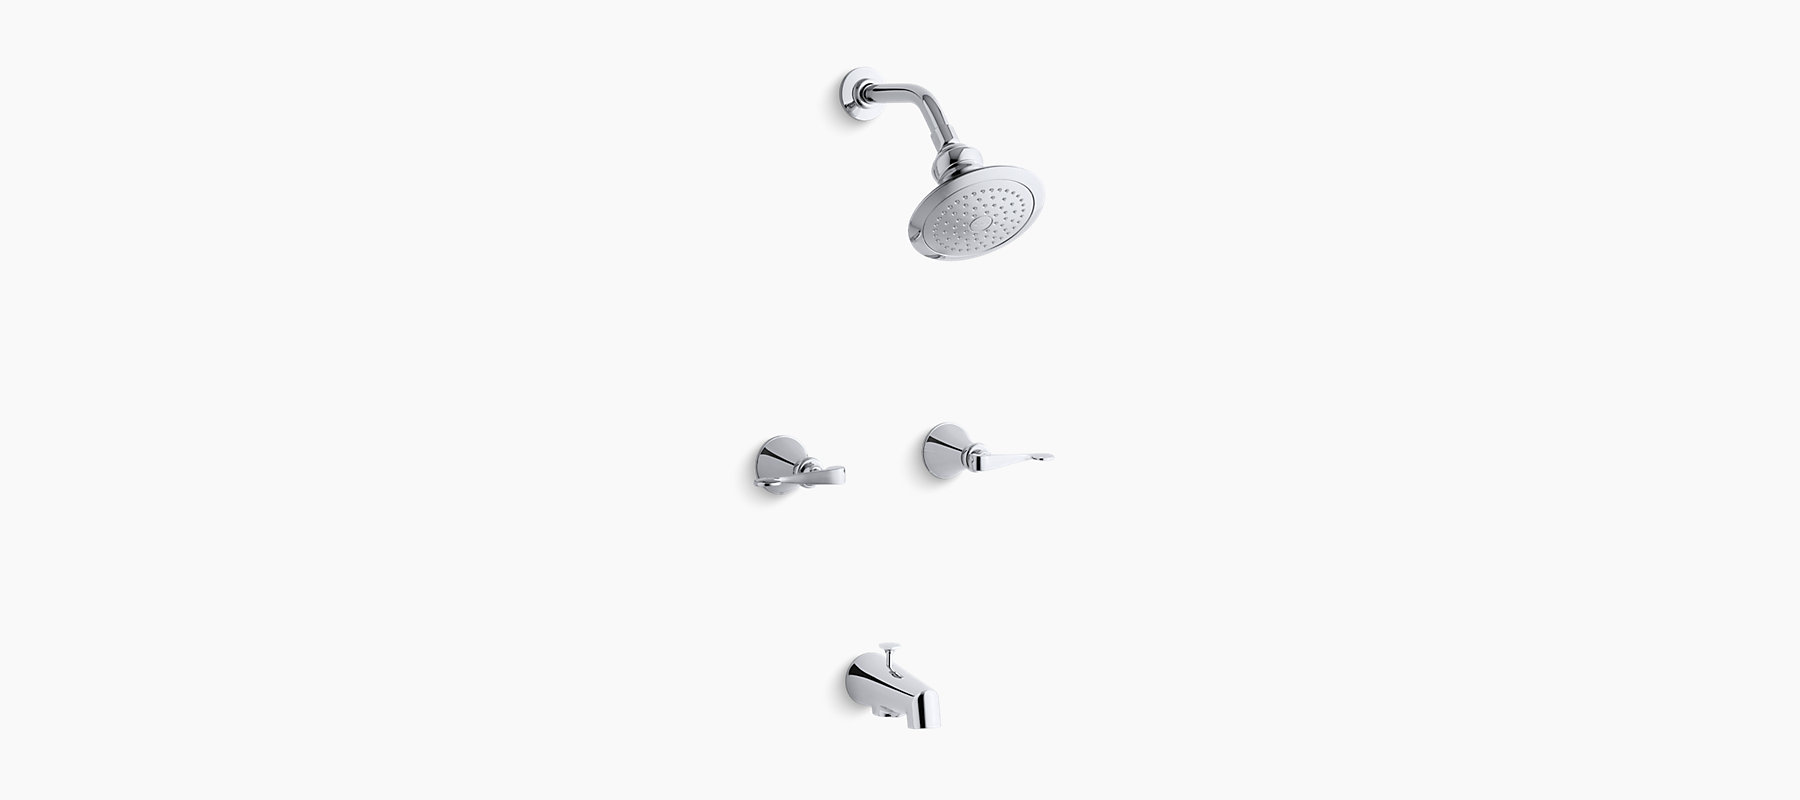 K-16213-4   Revival bath and shower faucet with scroll lever handles ...